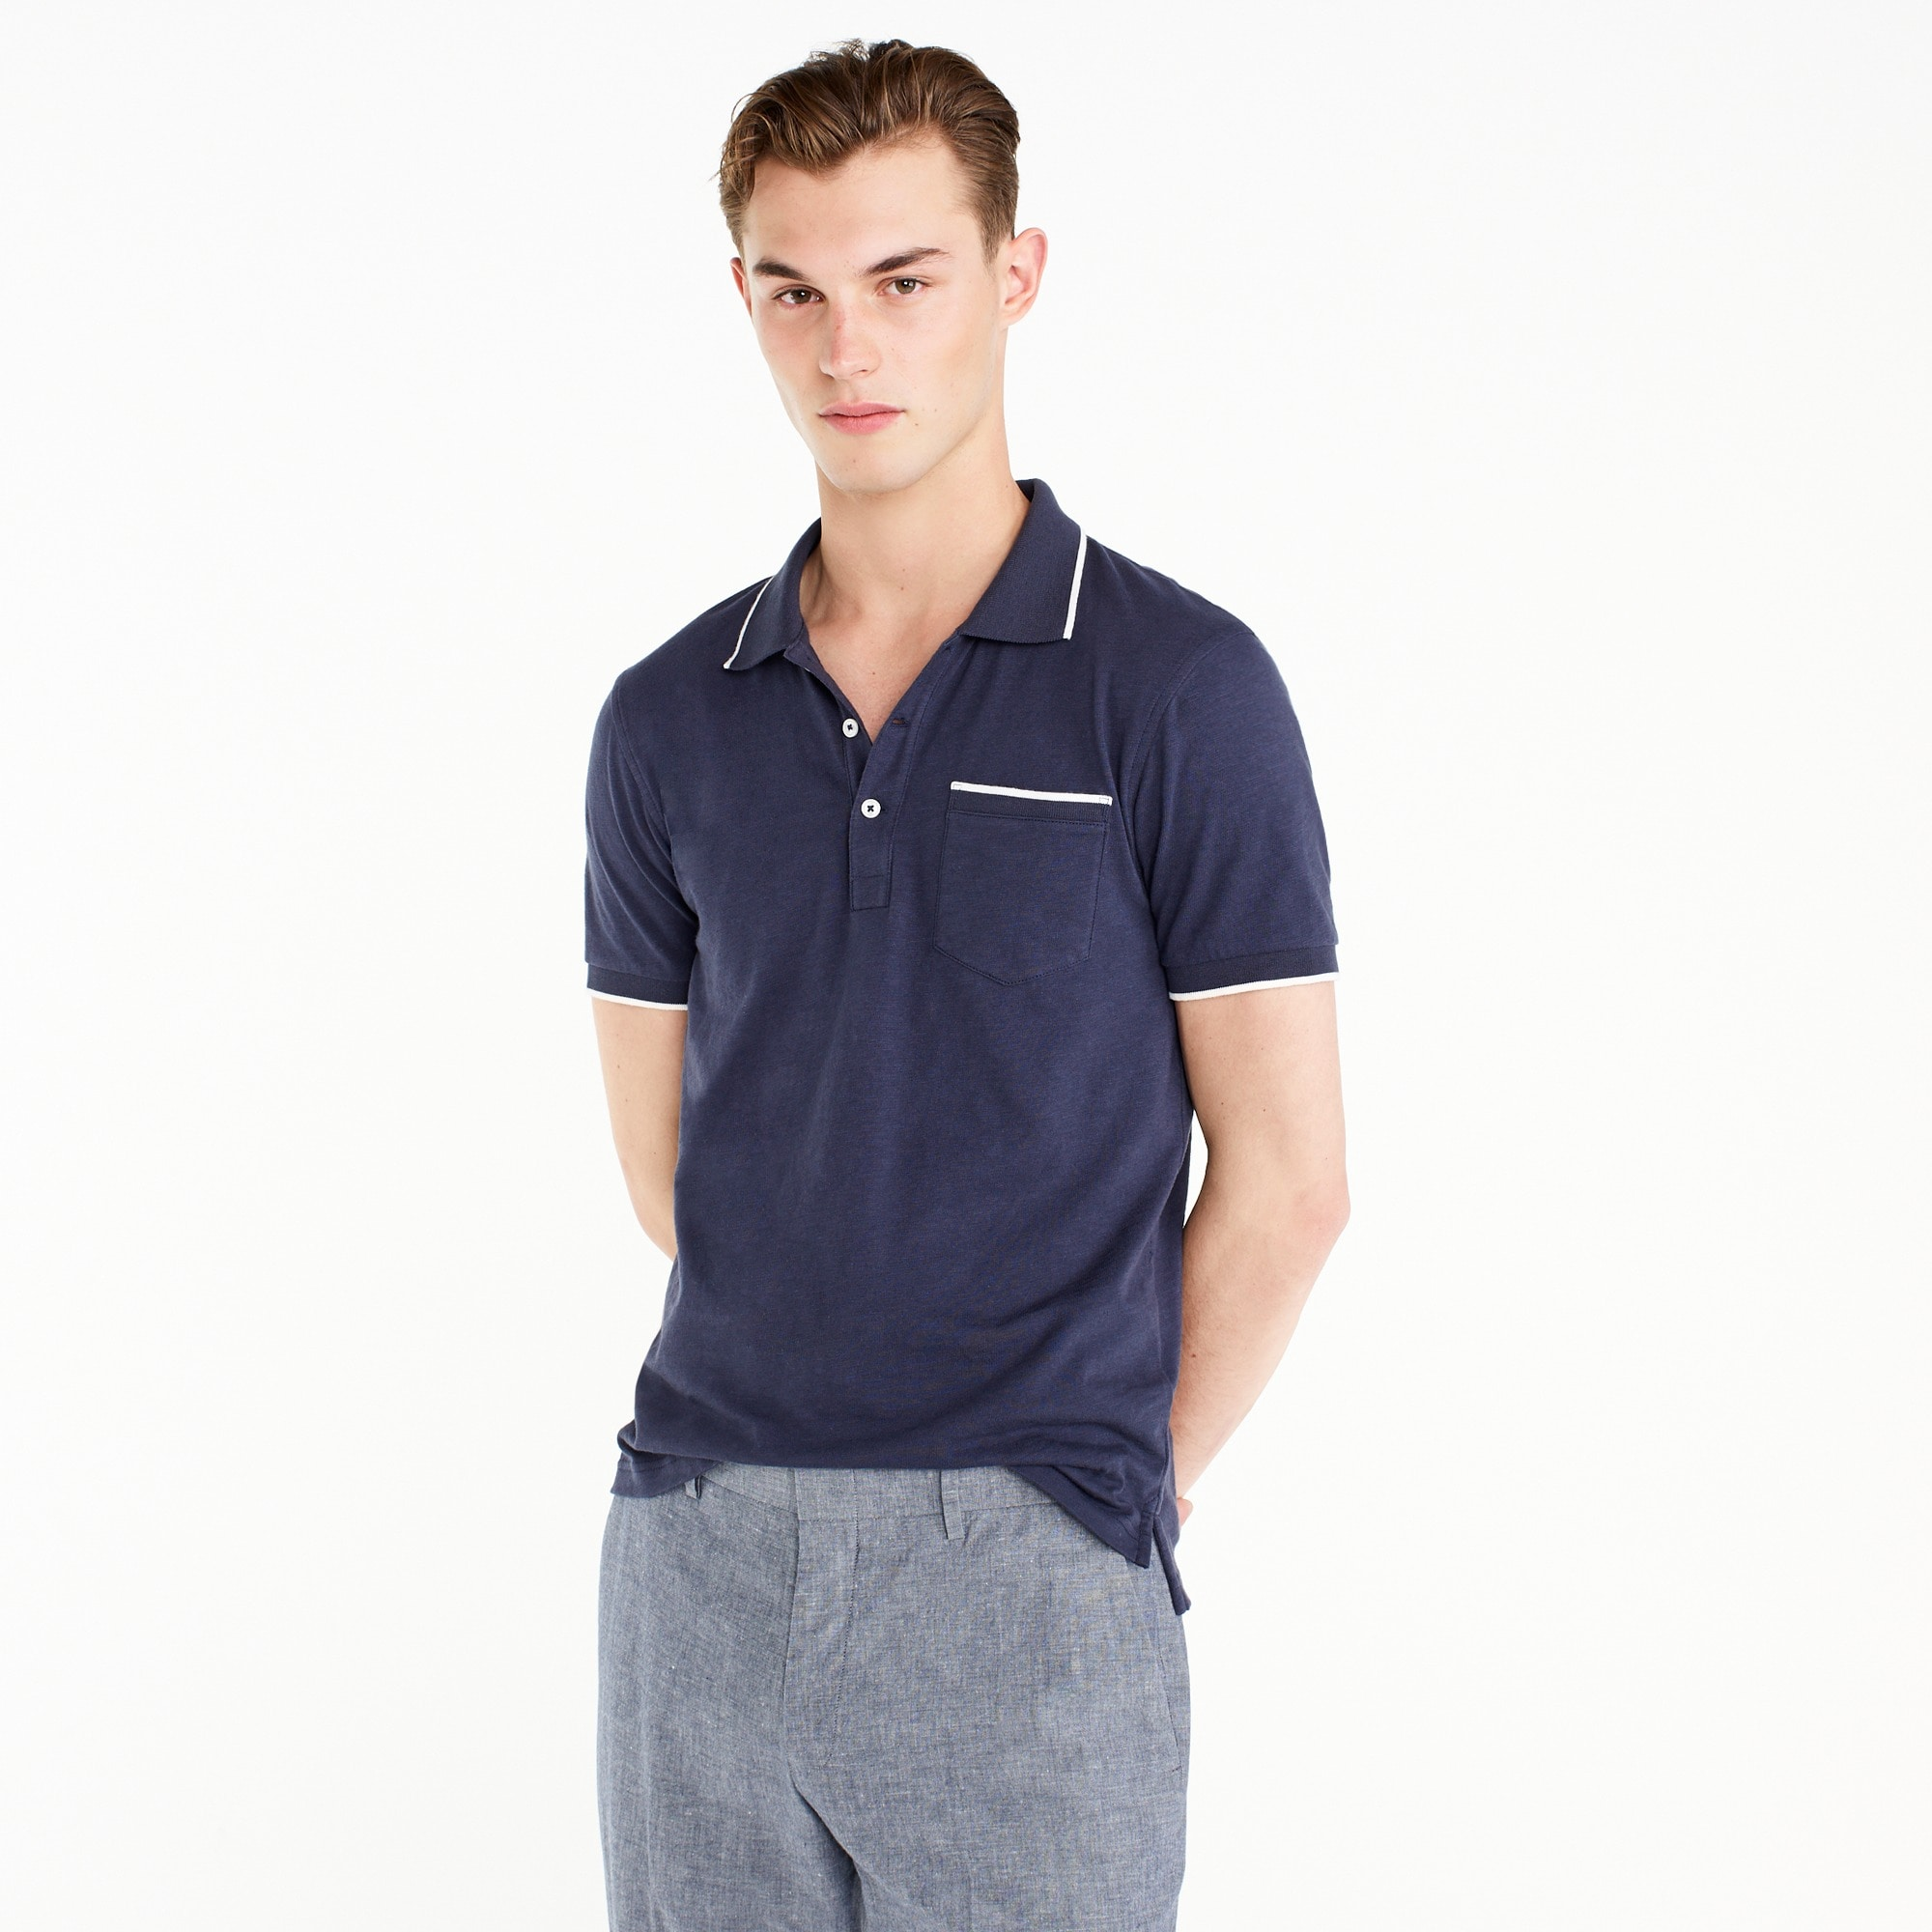 Image 1 for Slub jersey polo in tipped indigo